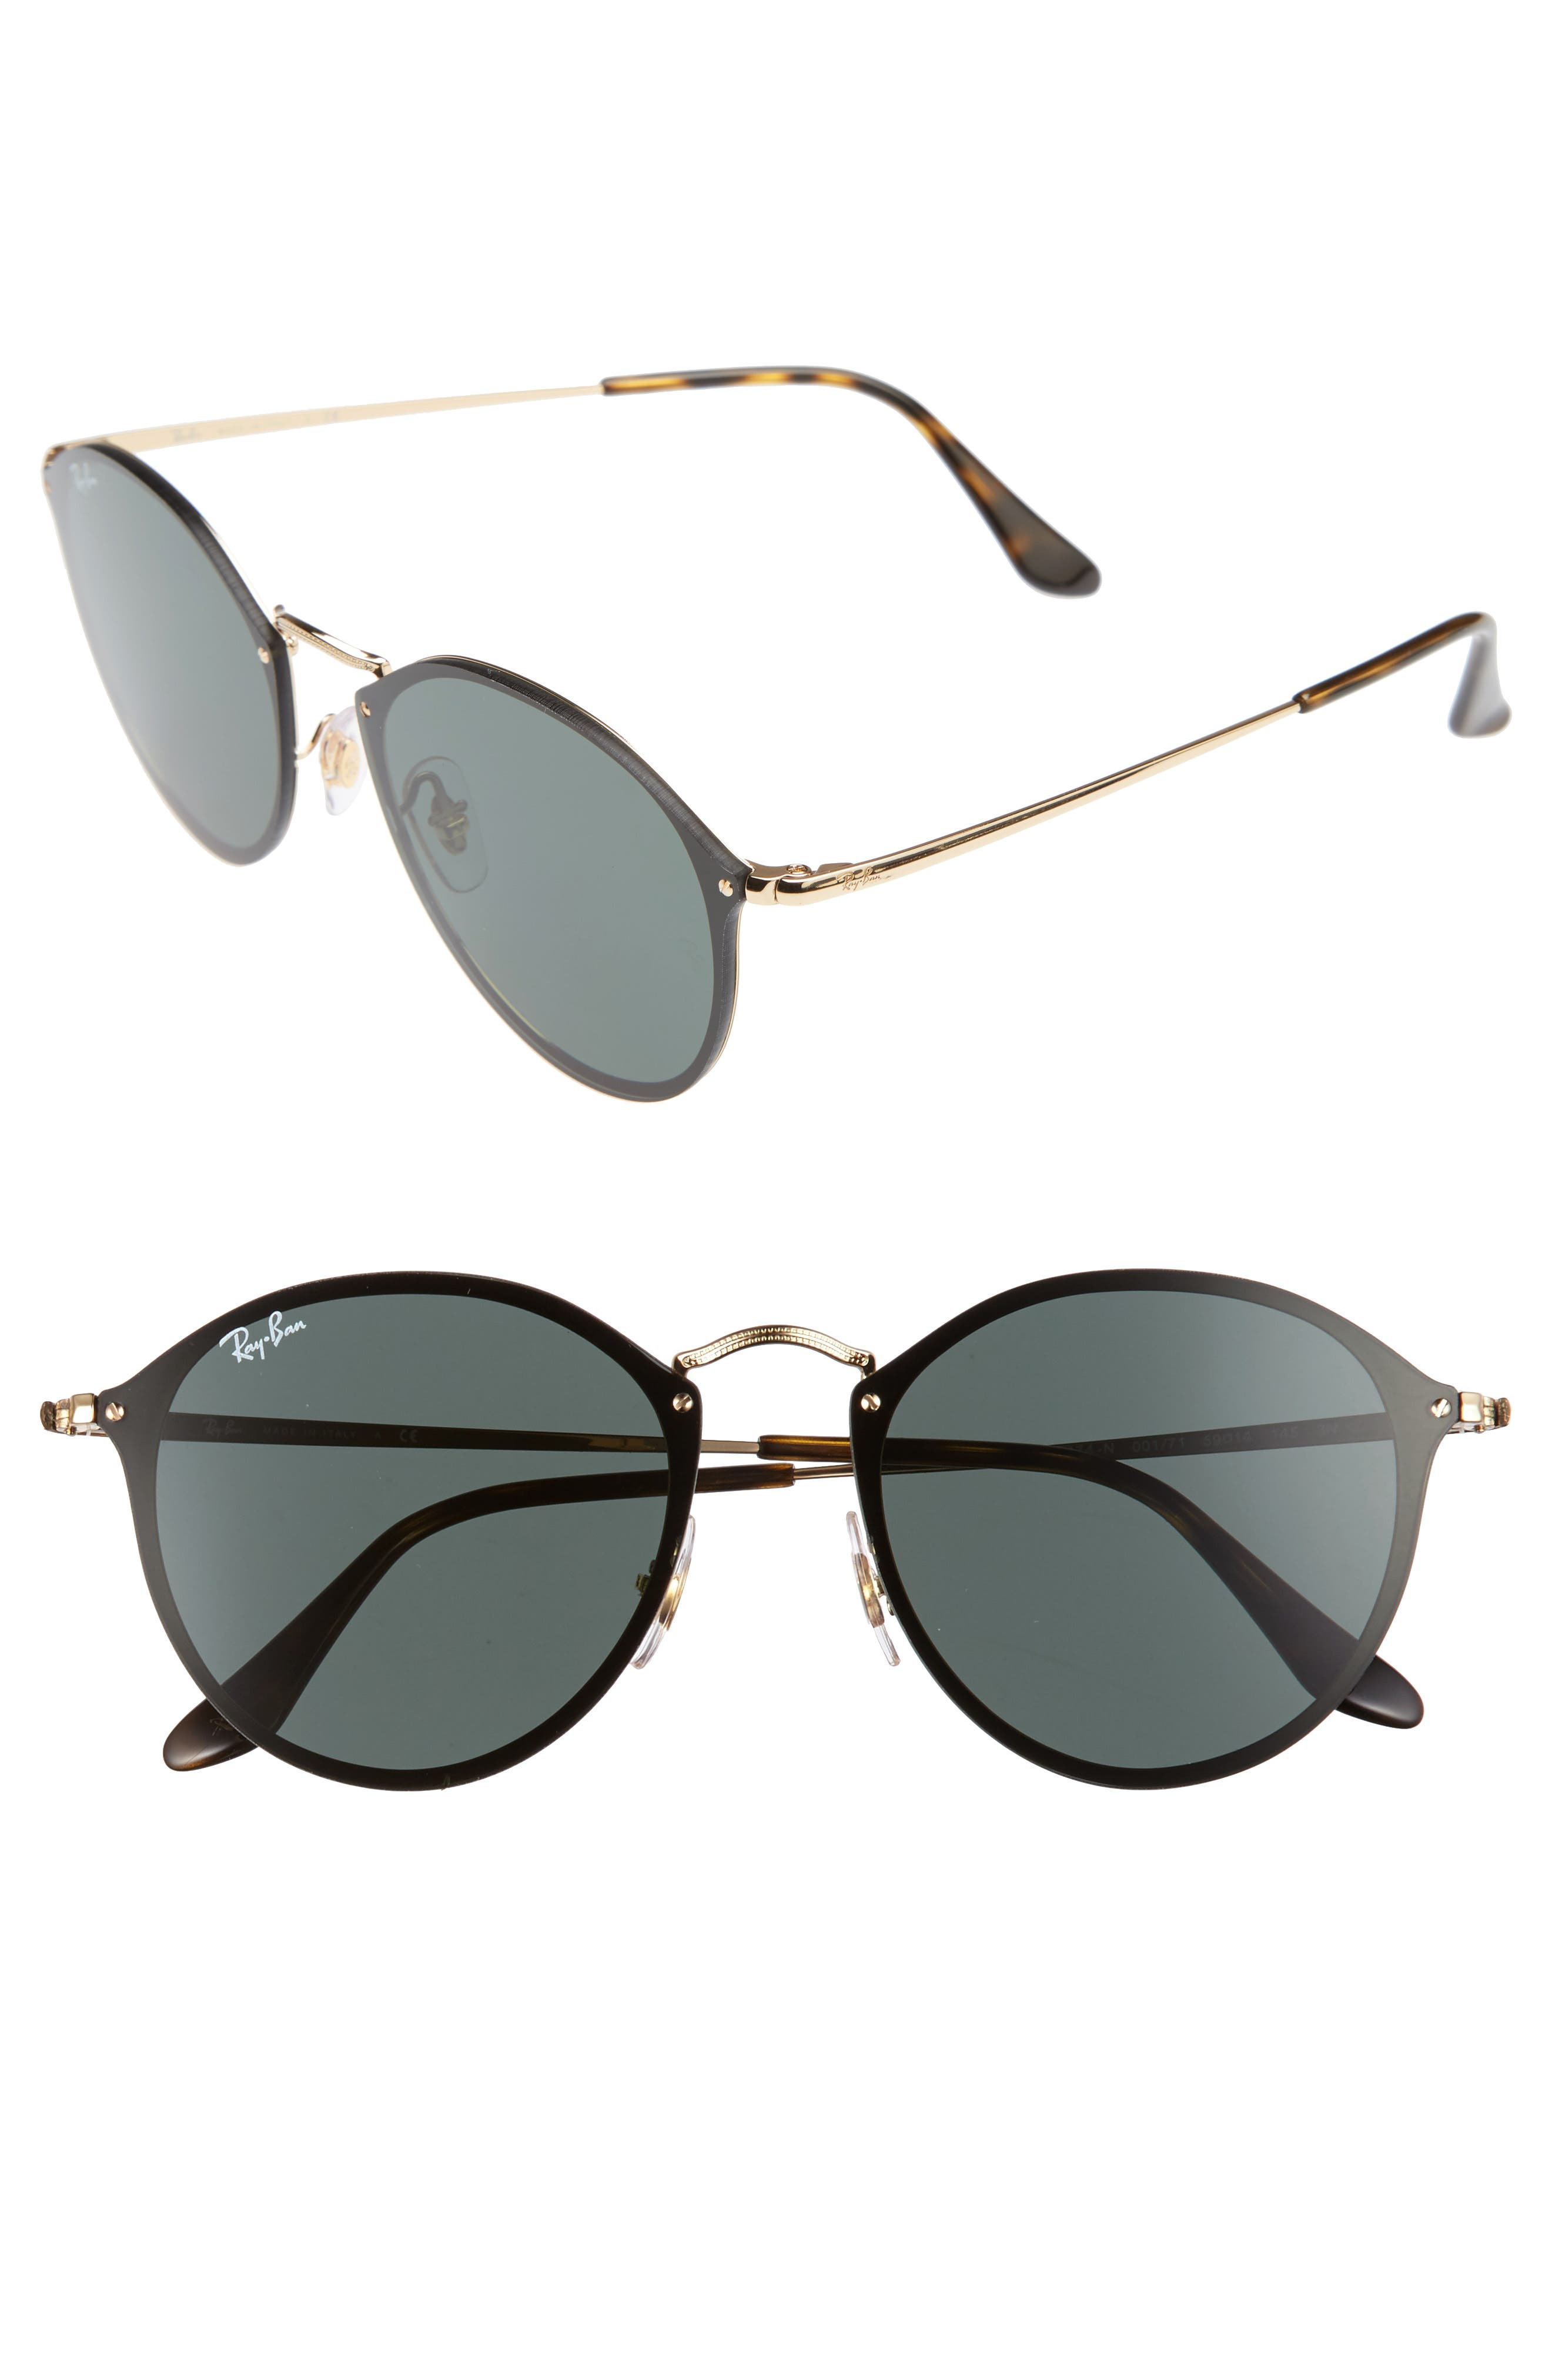 Blaze 59mm Round Sunglasses,                         Main,                         color, GOLD/ GREEN